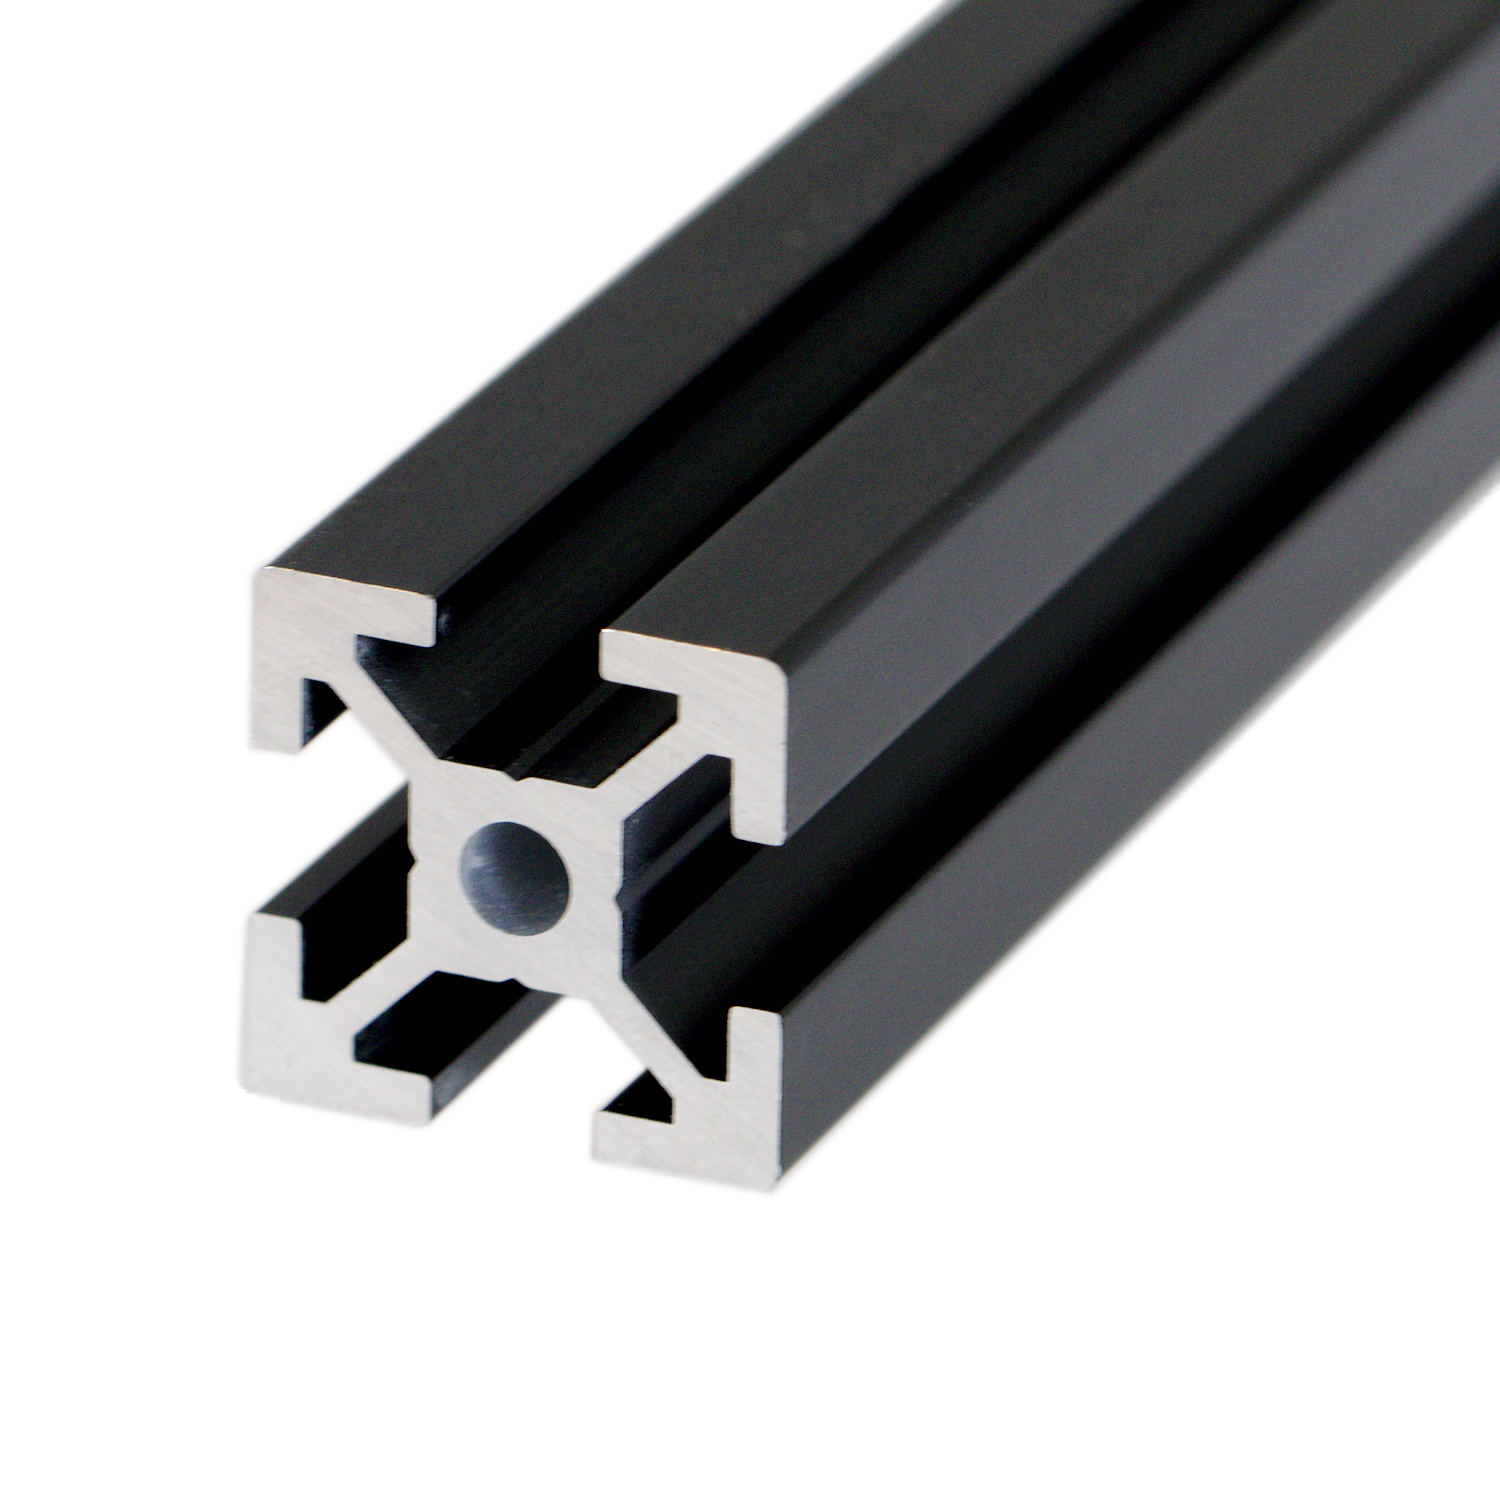 Aluminum extrusion 20x20mm (Custom length) - Black